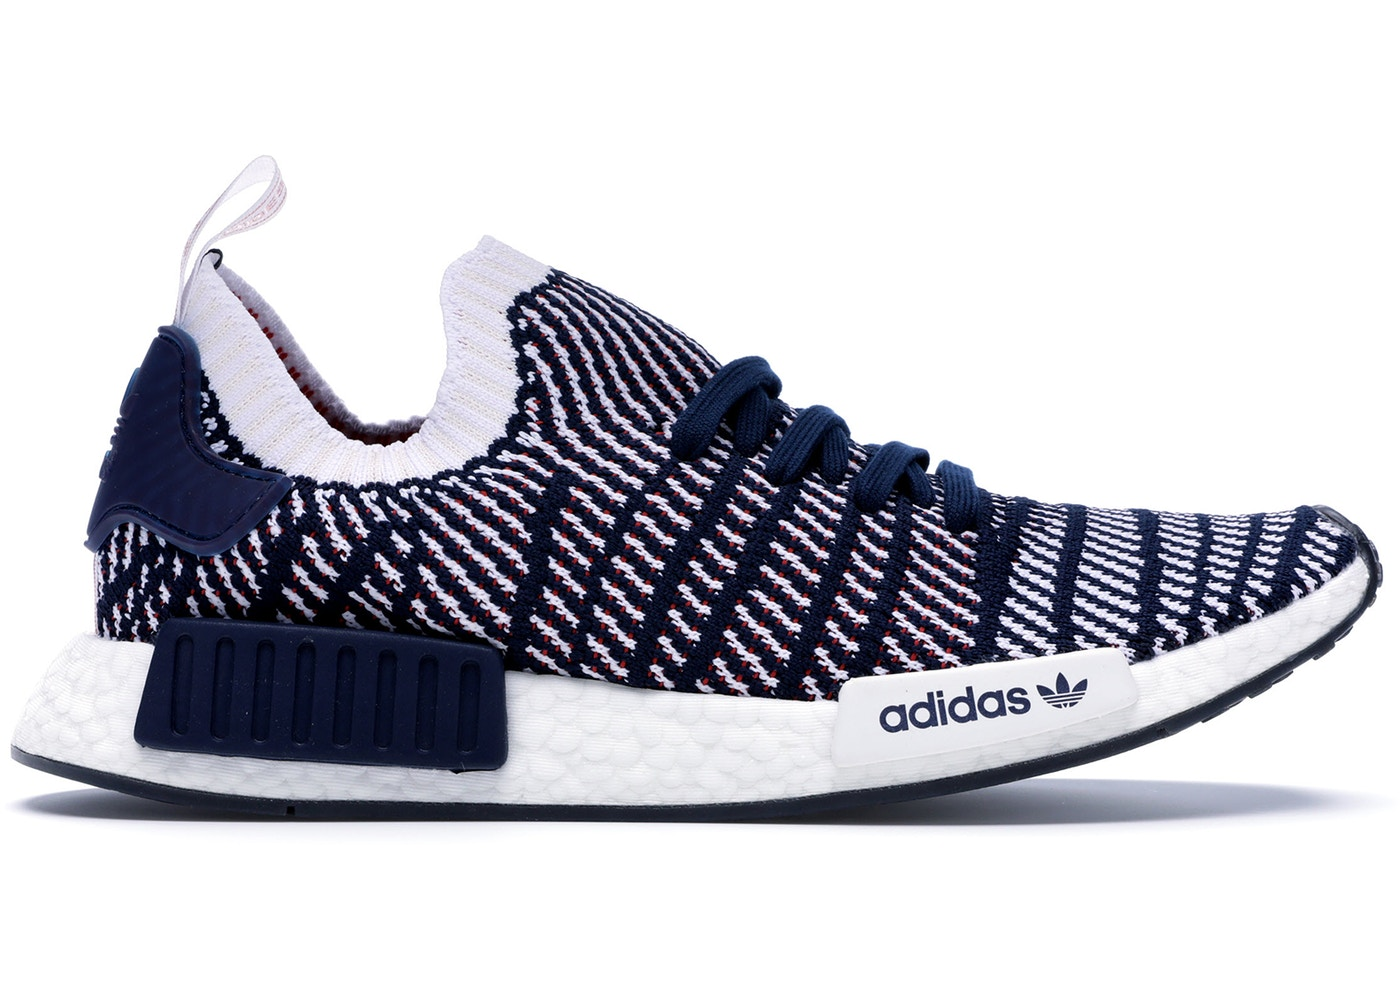 9266cca18 adidas NMD R1 STLT Navy White Red - D96821